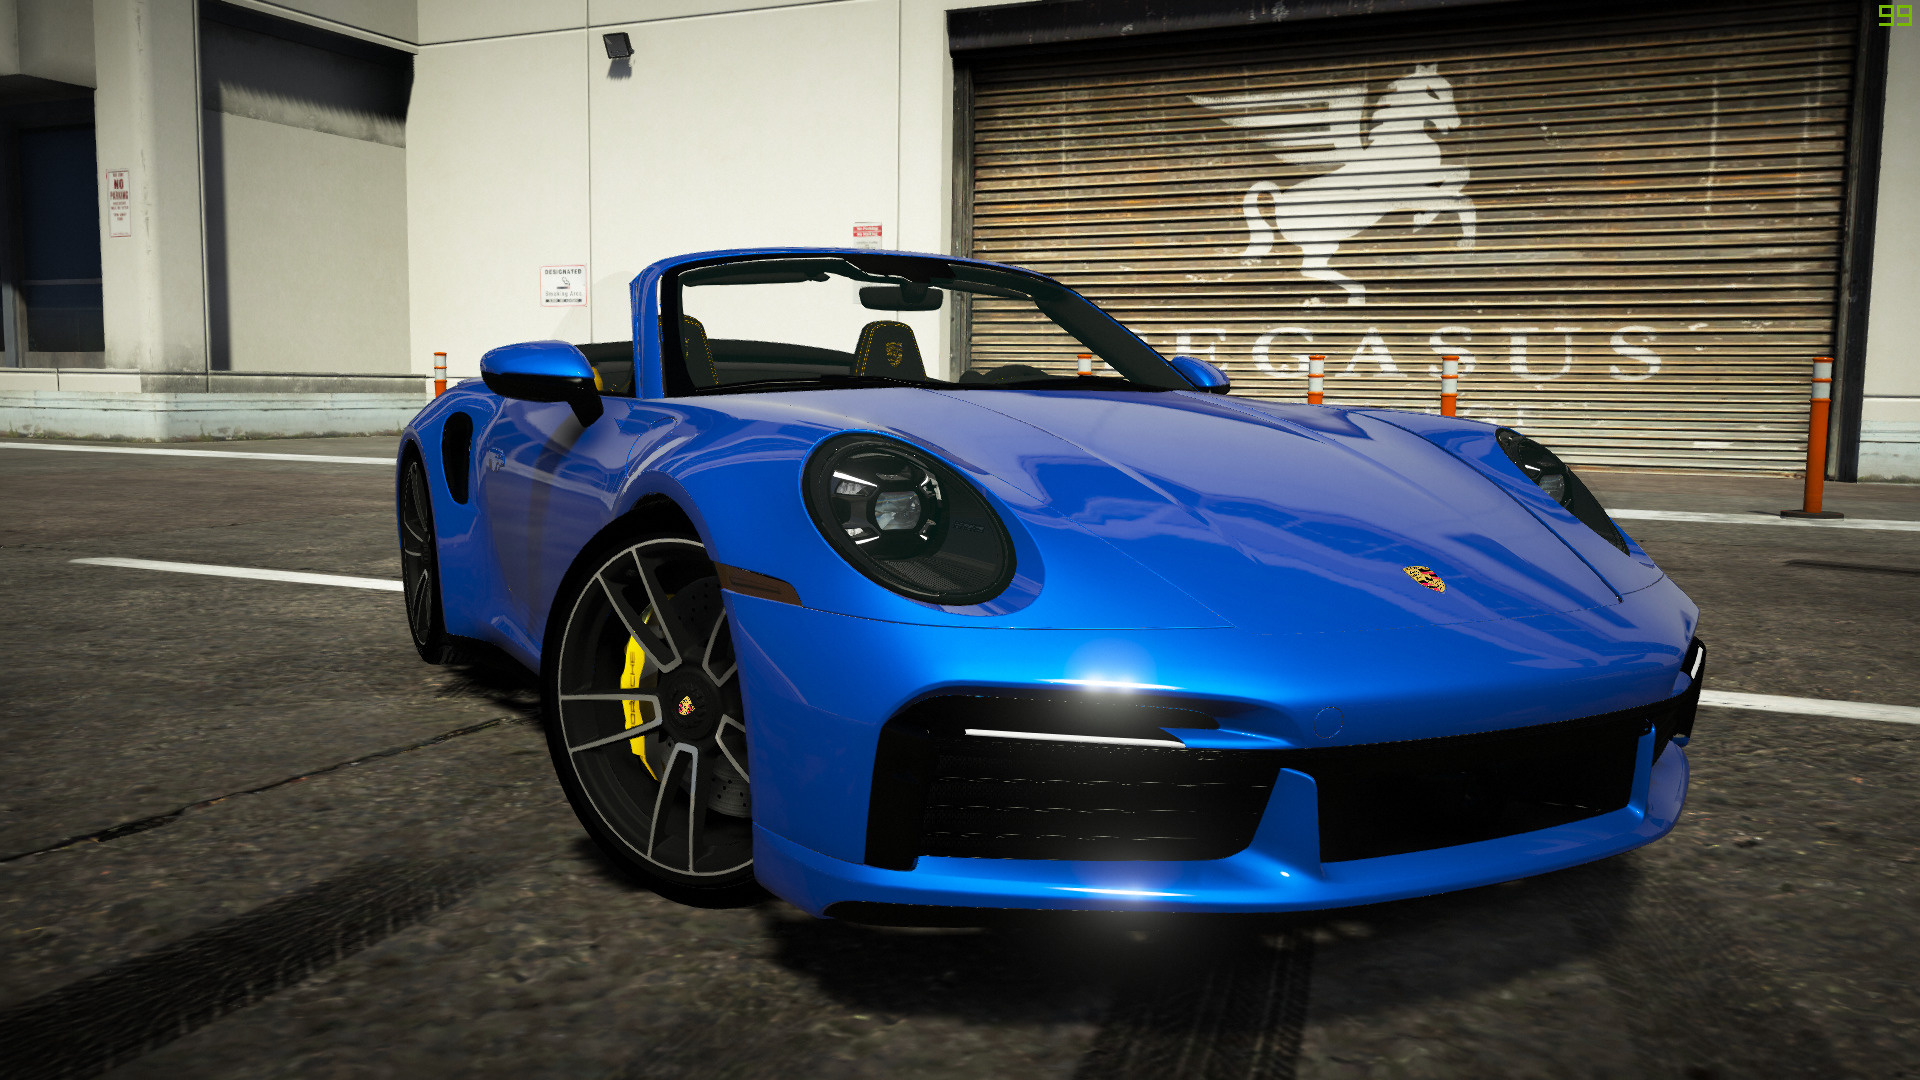 2020 Porsche 911 Turbo S Cabriolet Add On 992 Auto Spoiler Extras Gta5 Mods Com